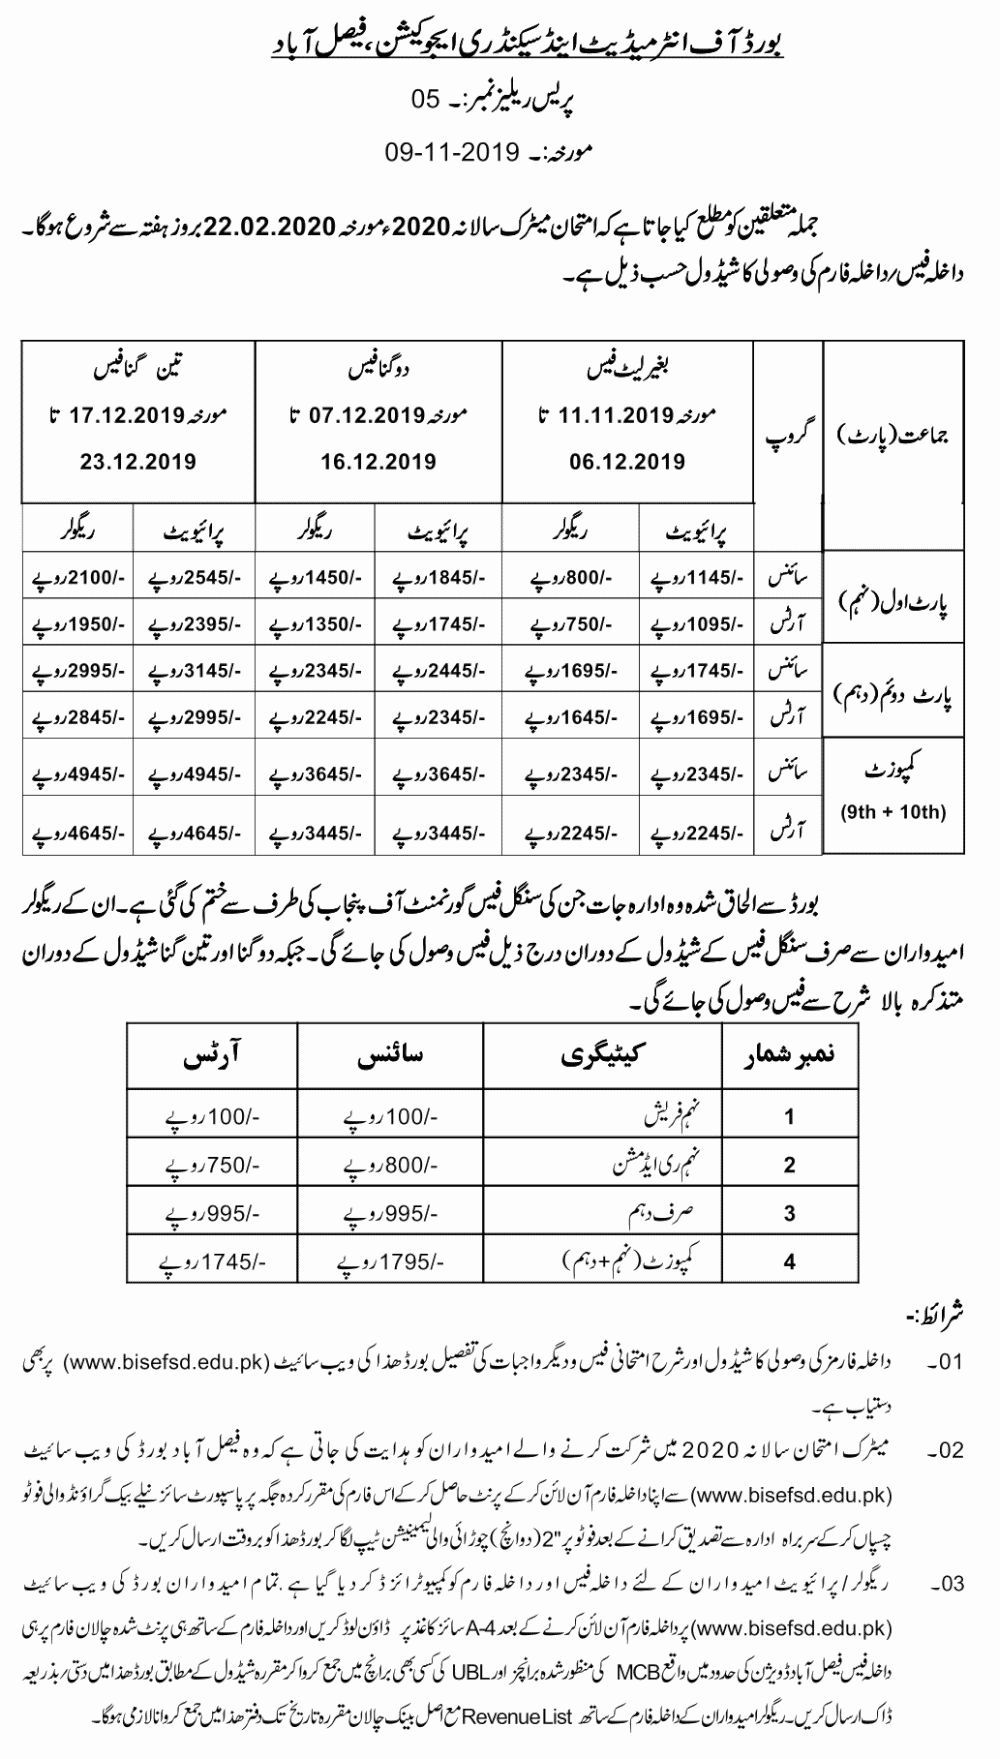 Faisalabad-board-ssc-exam-schedule-2020-page1